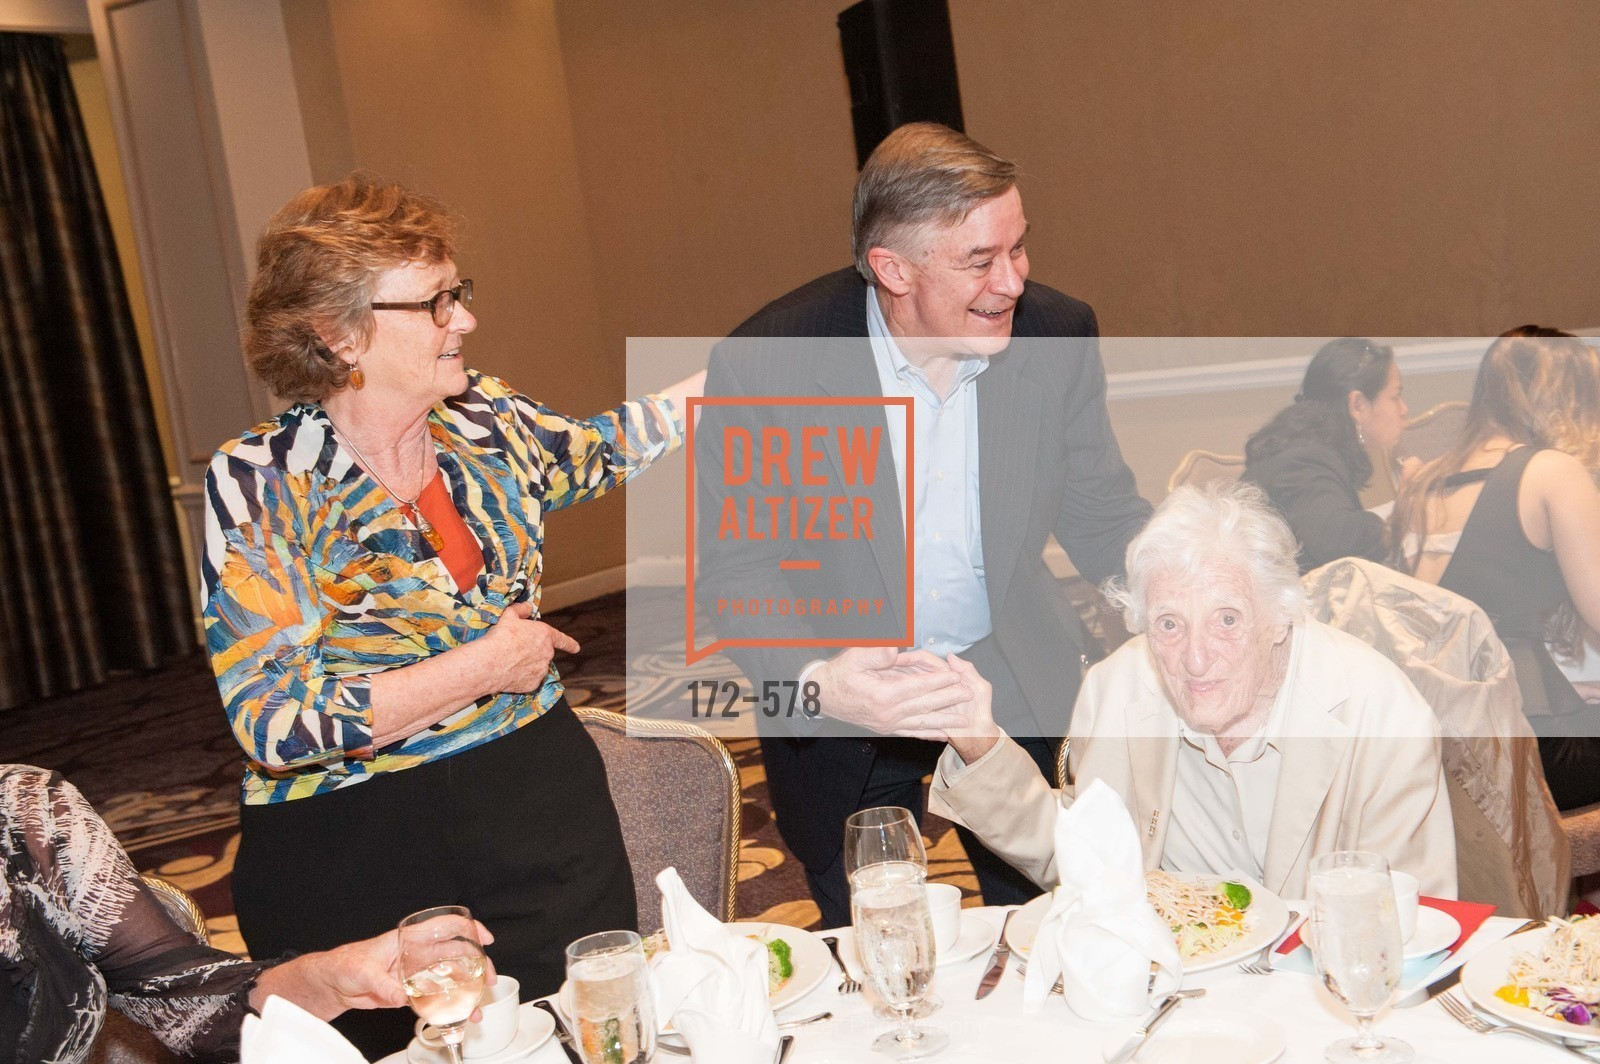 Martha Ryan, Dan MacDonald, Kate Ryan, HOMELESS PRENATAL Annual Luncheon 2014, US, October 1st, 2014,Drew Altizer, Drew Altizer Photography, full-service agency, private events, San Francisco photographer, photographer california